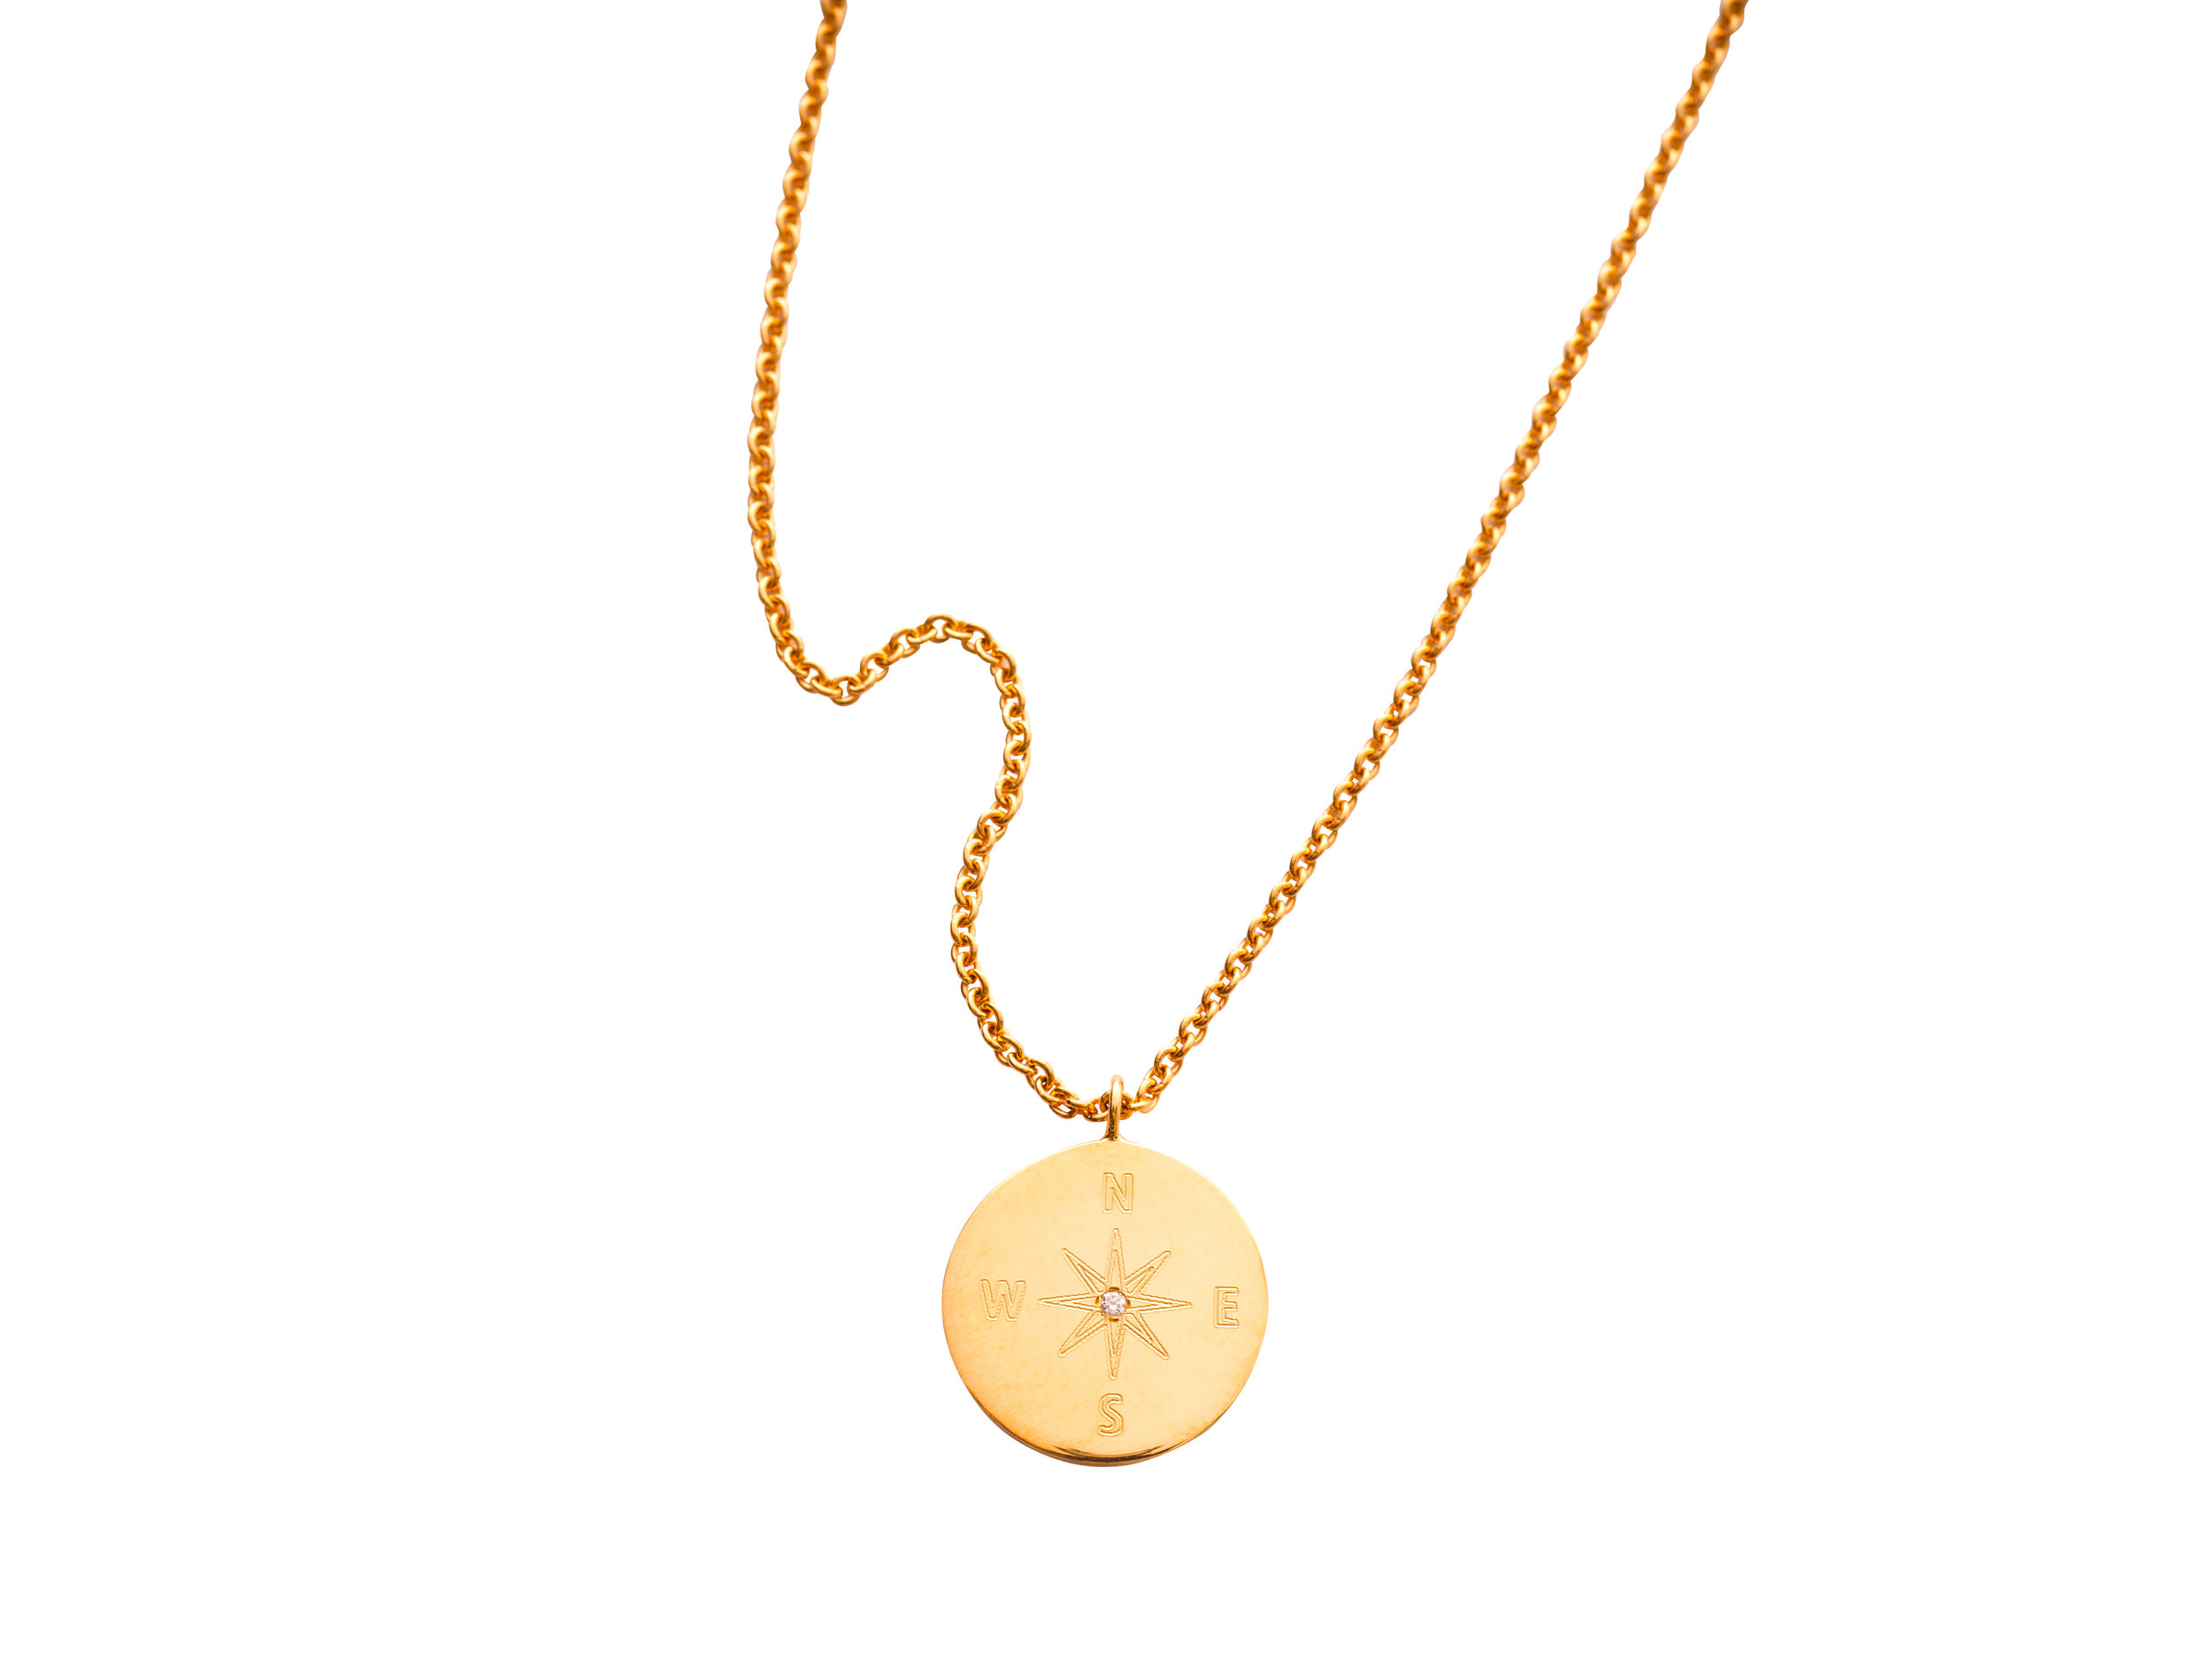 COMPASS NECKLACE 12.300 NOK   18 kt gold and one diamond